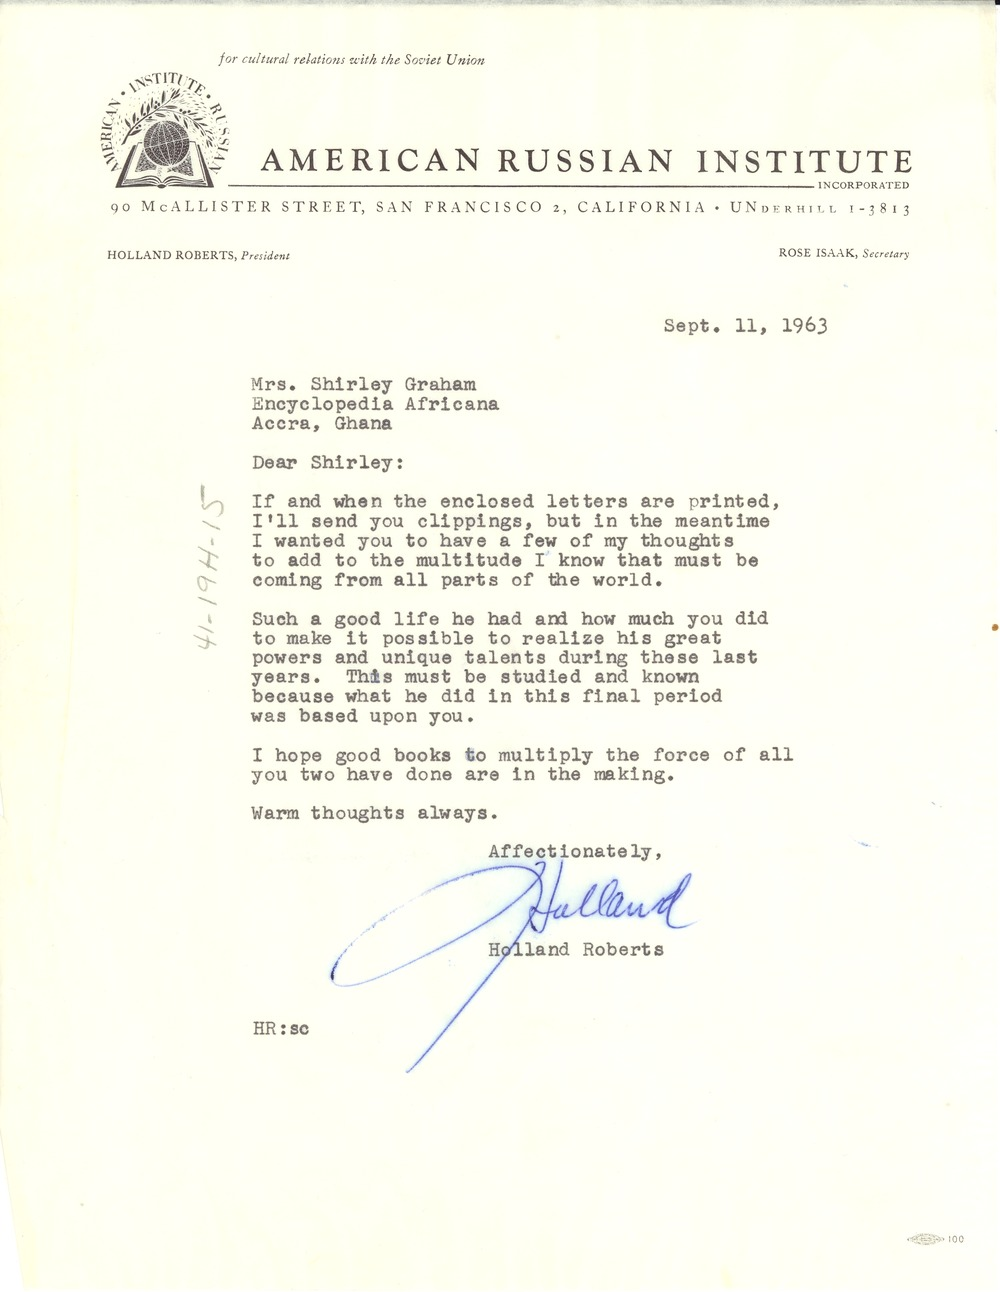 Letter from American Russian Institute to Shirley Graham Du Bois, September 11, 1963